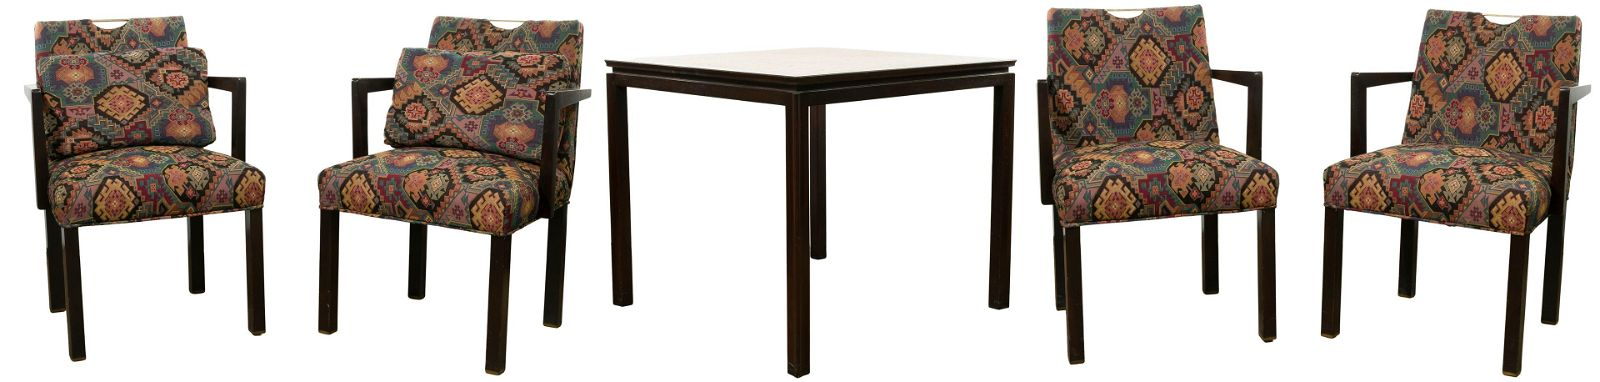 MCM Edward Wormley for Dunbar Table and Chairs